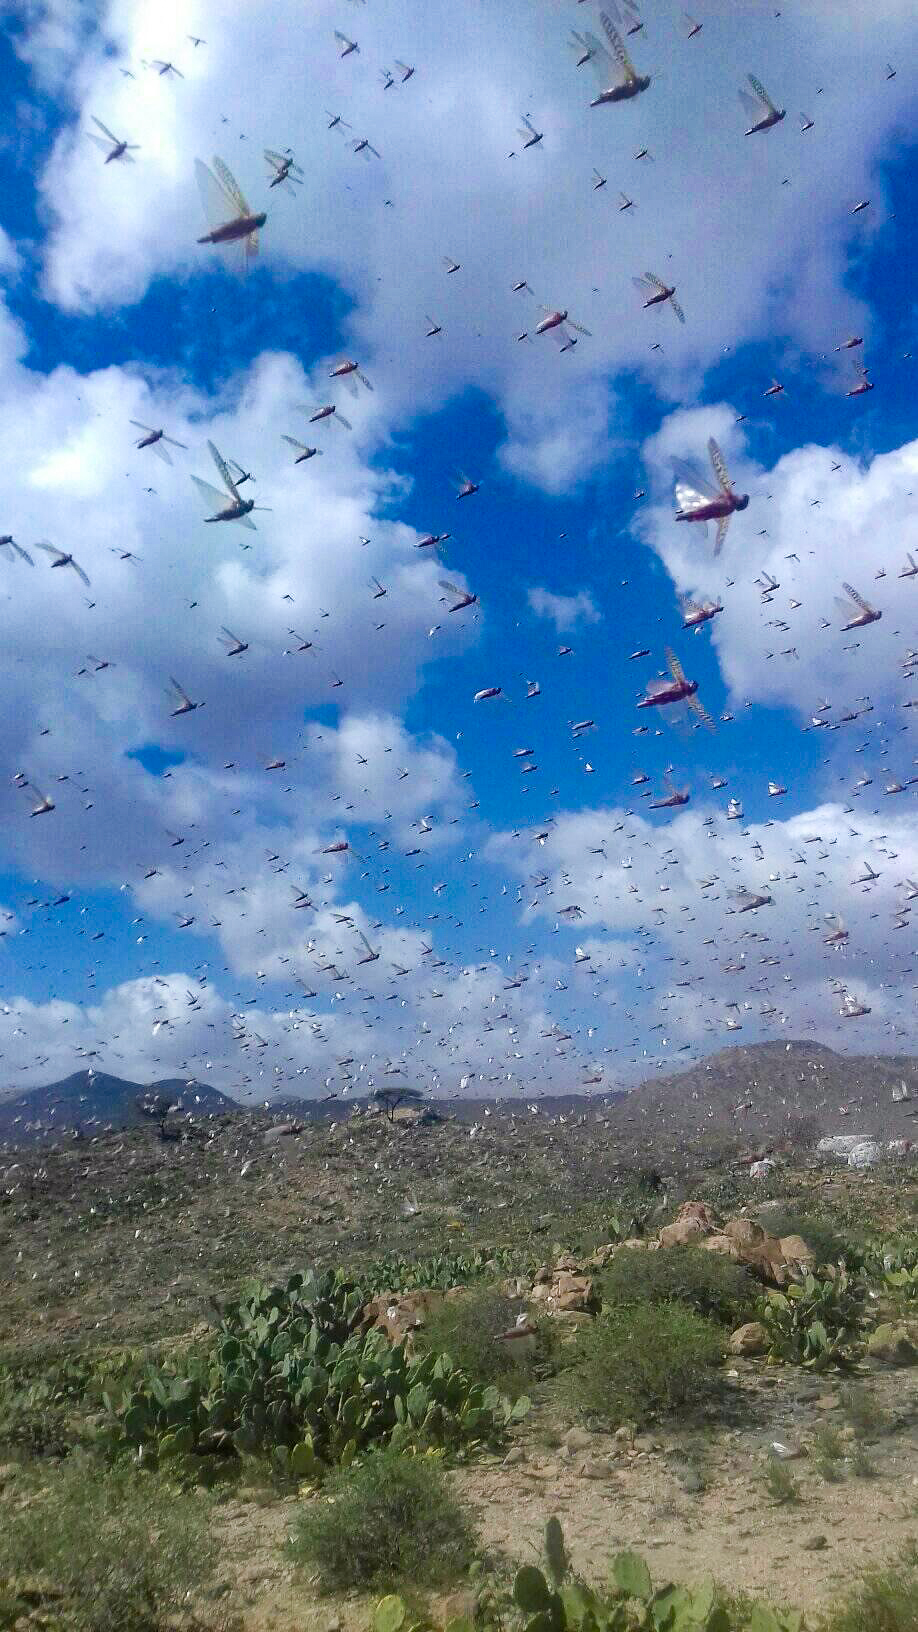 A locust swarm in Somaliland